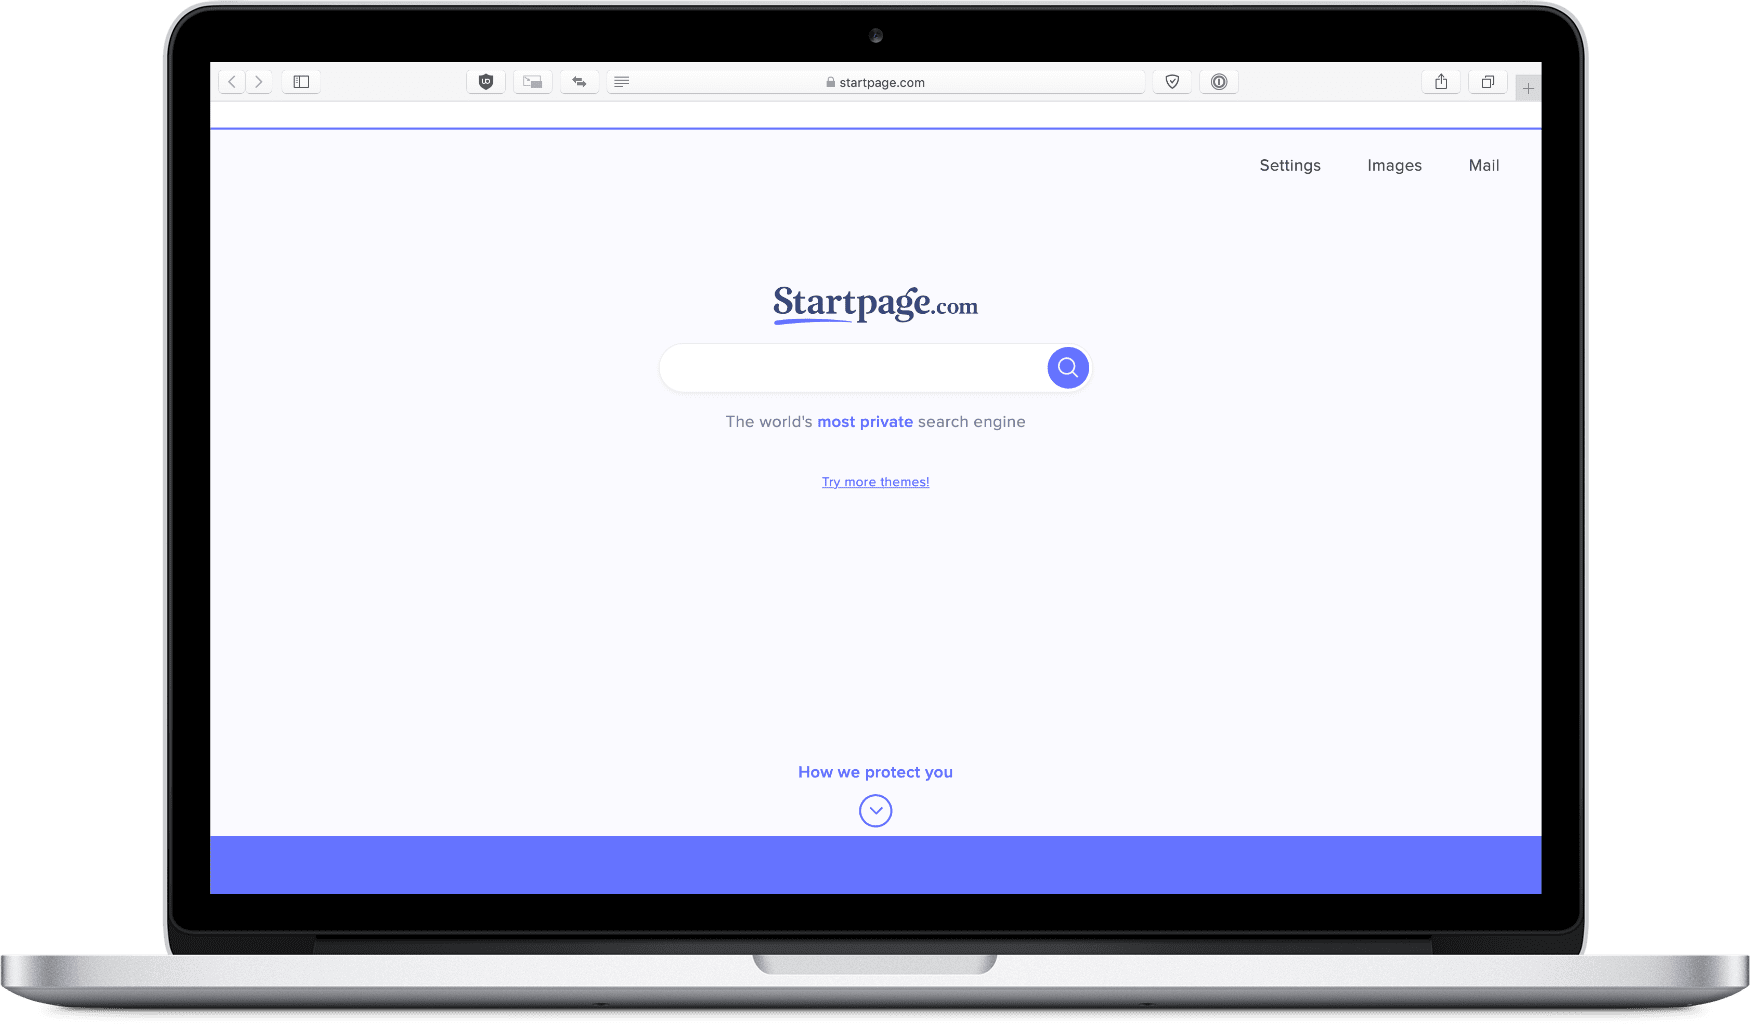 Startpage Launches New Anonymous View Feature